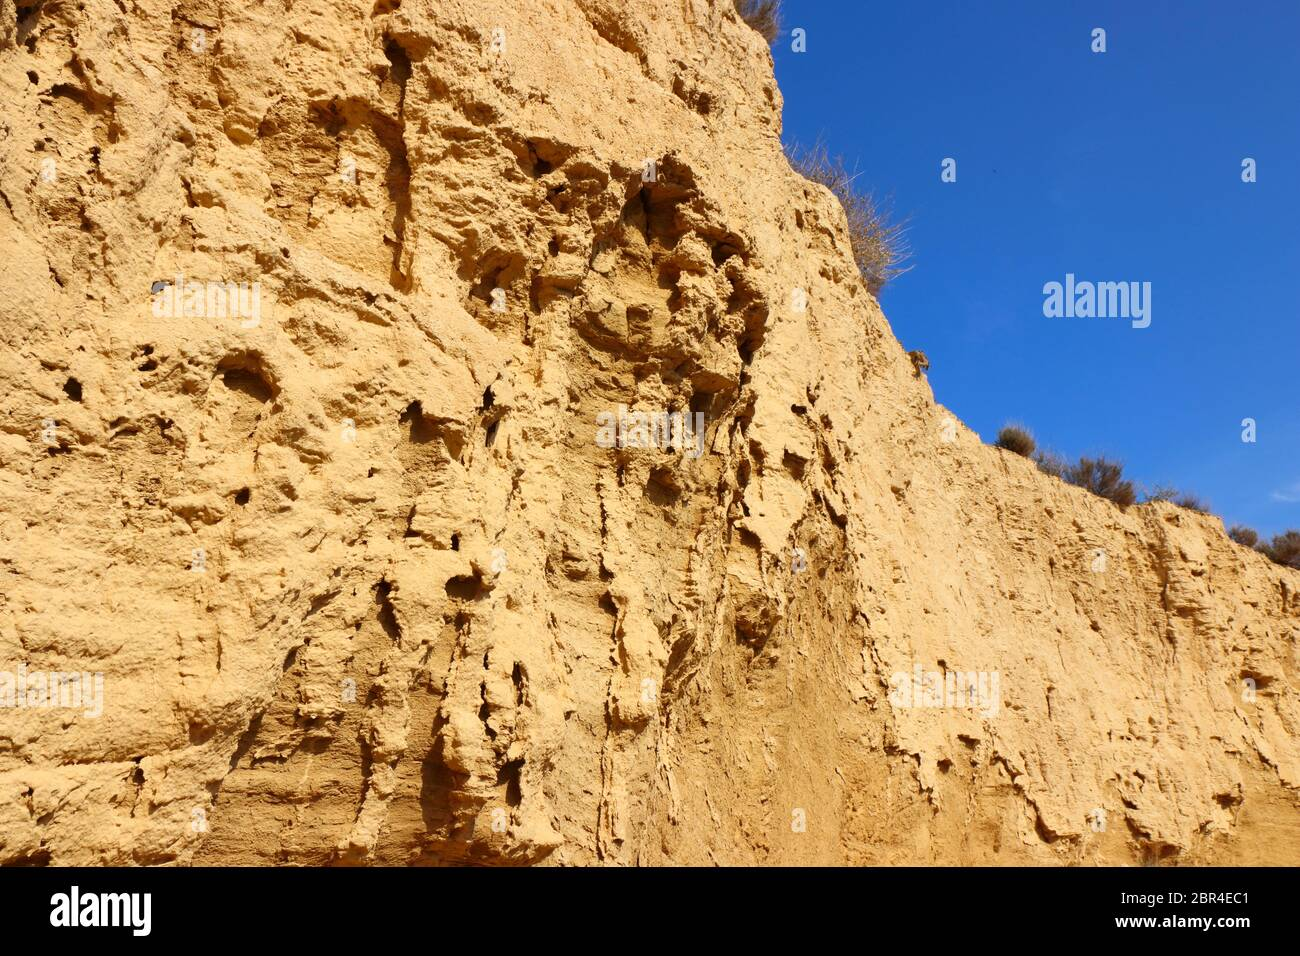 Close-up of sediments and erosional features in the semi-desert natural region Bardenas Reales, UNESCO Biosphere Reserve, Navarra, Spain Stock Photo